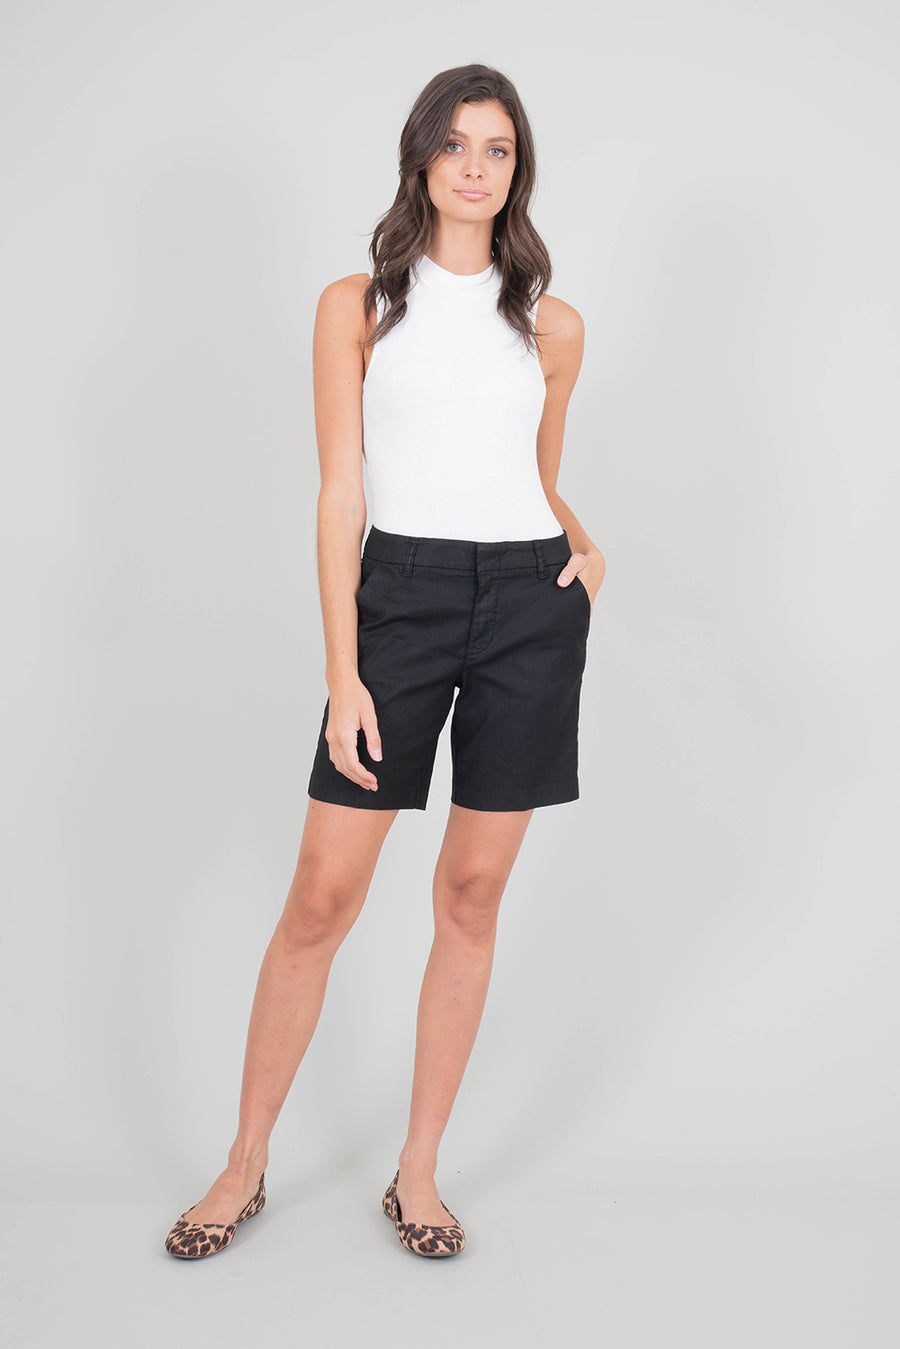 Cindie Strech Linen Short - level99jeans